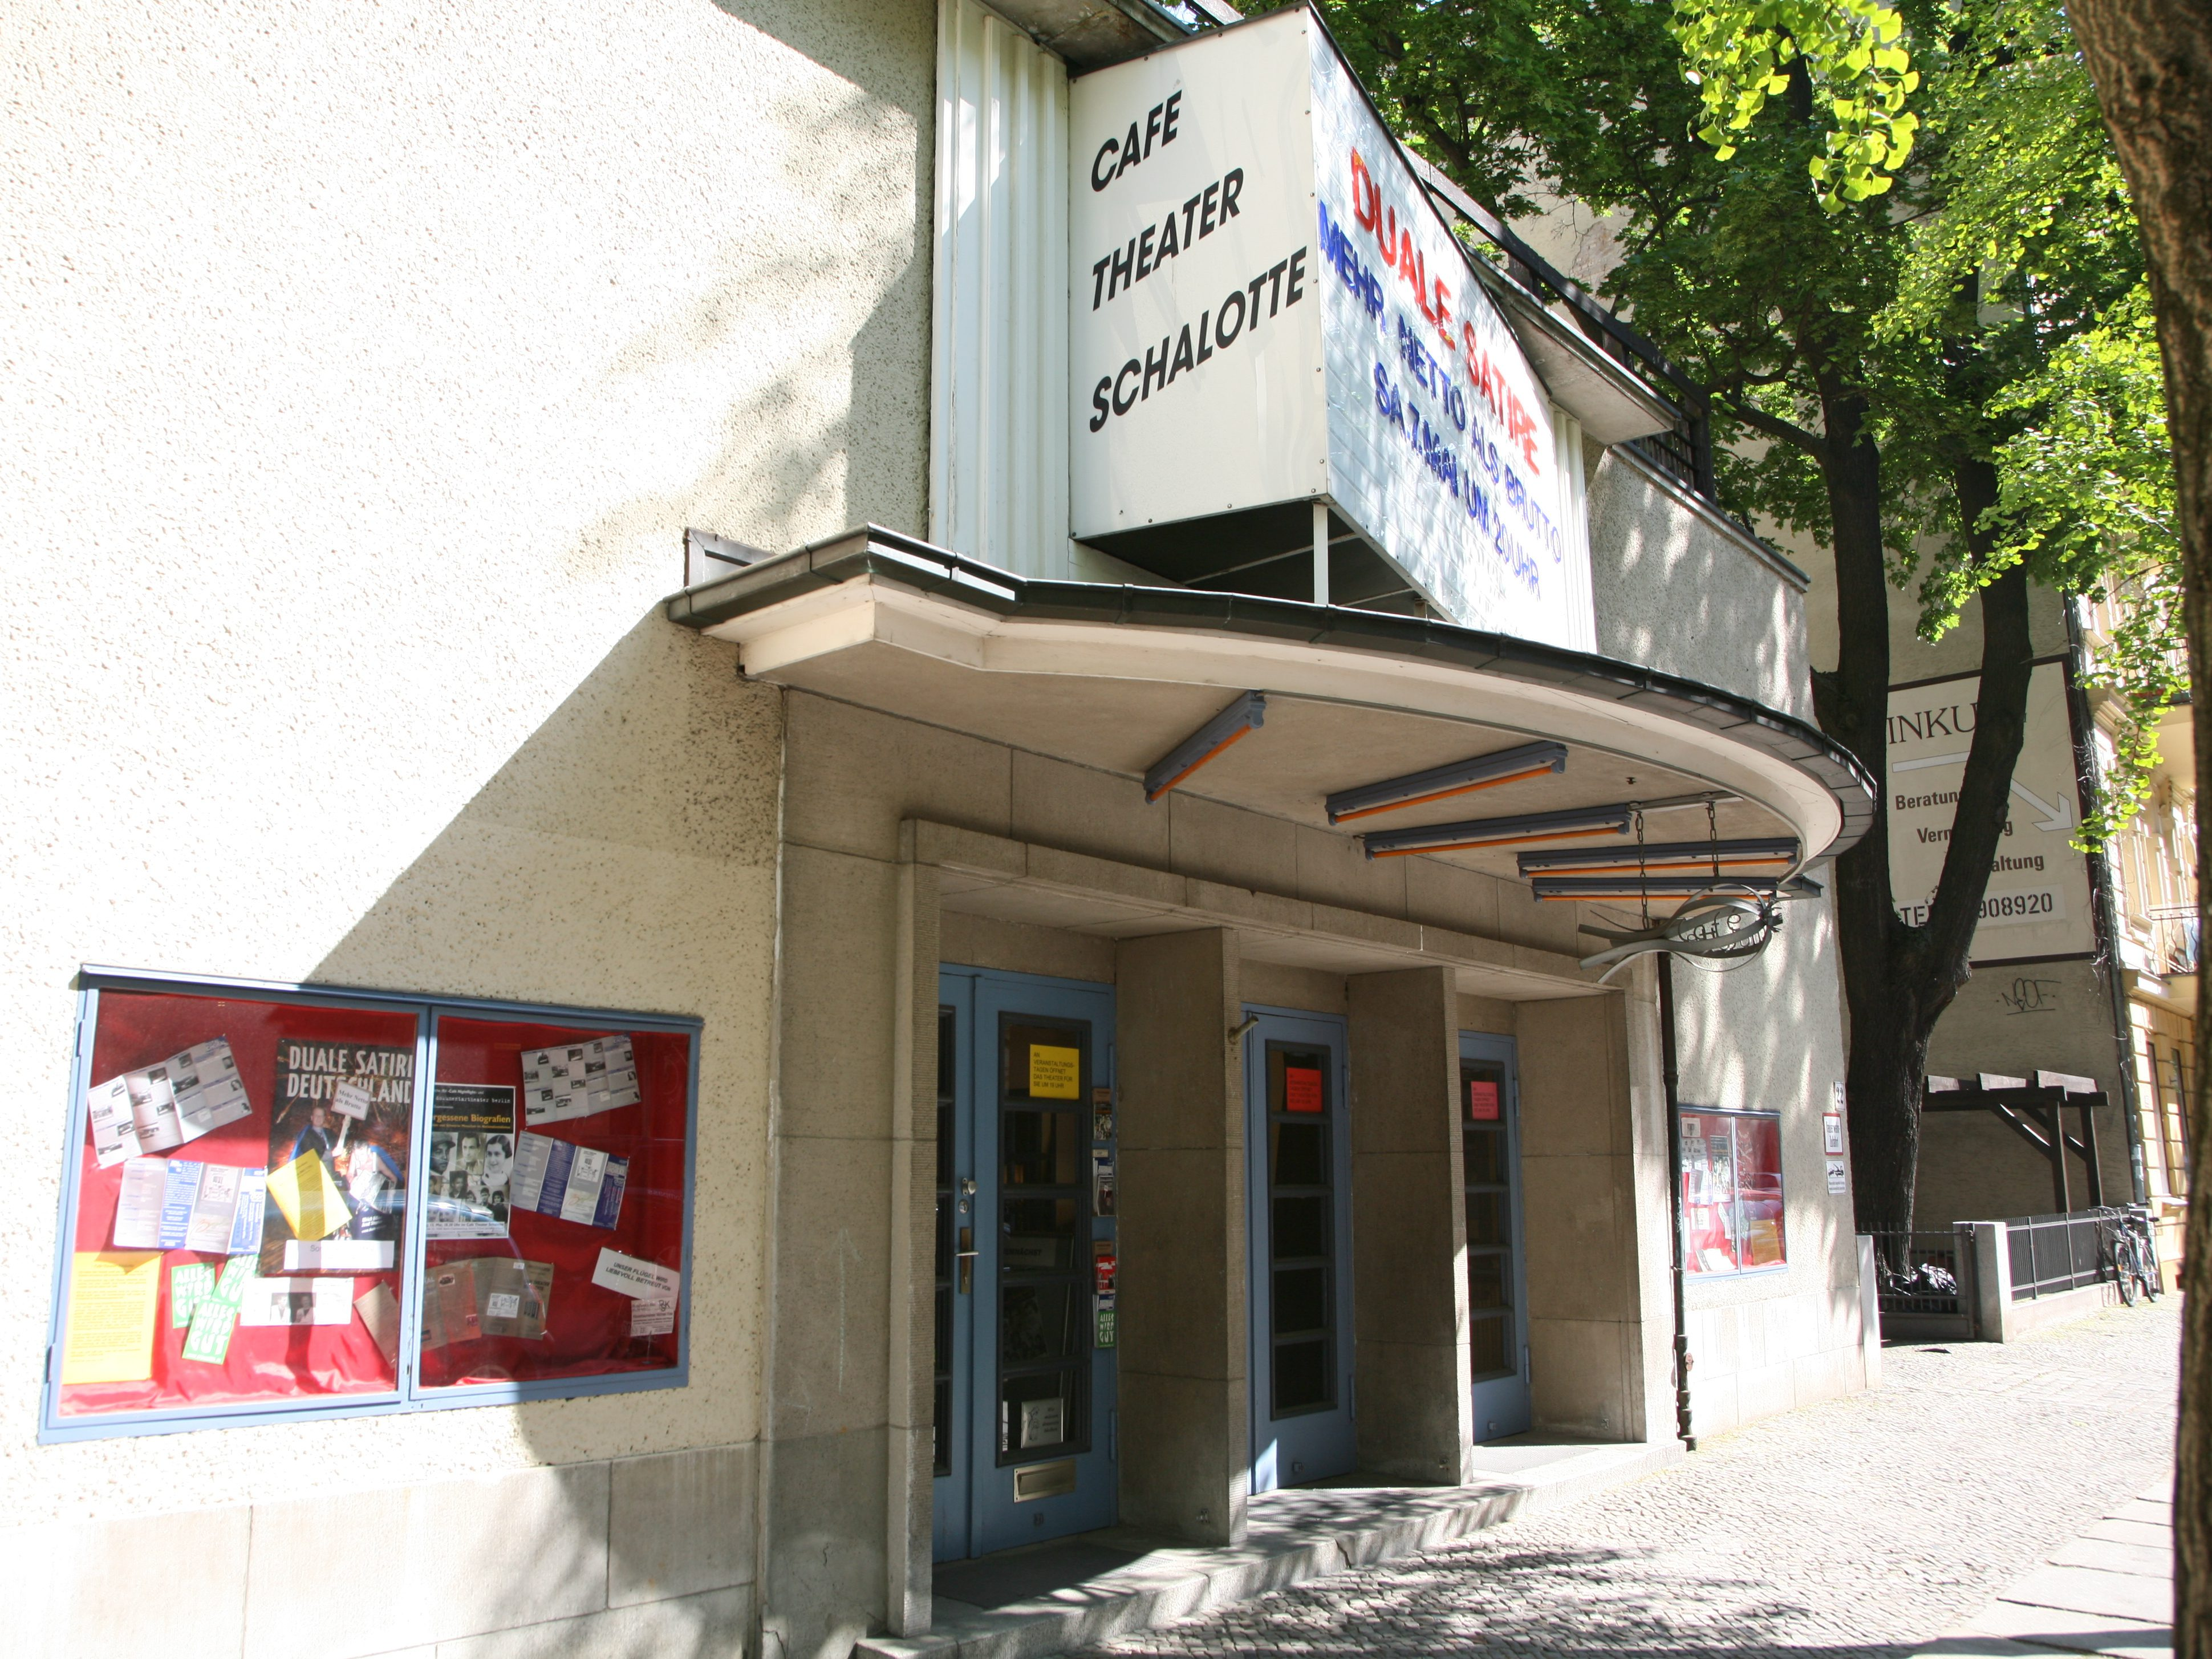 Cafe Theater Schalotte